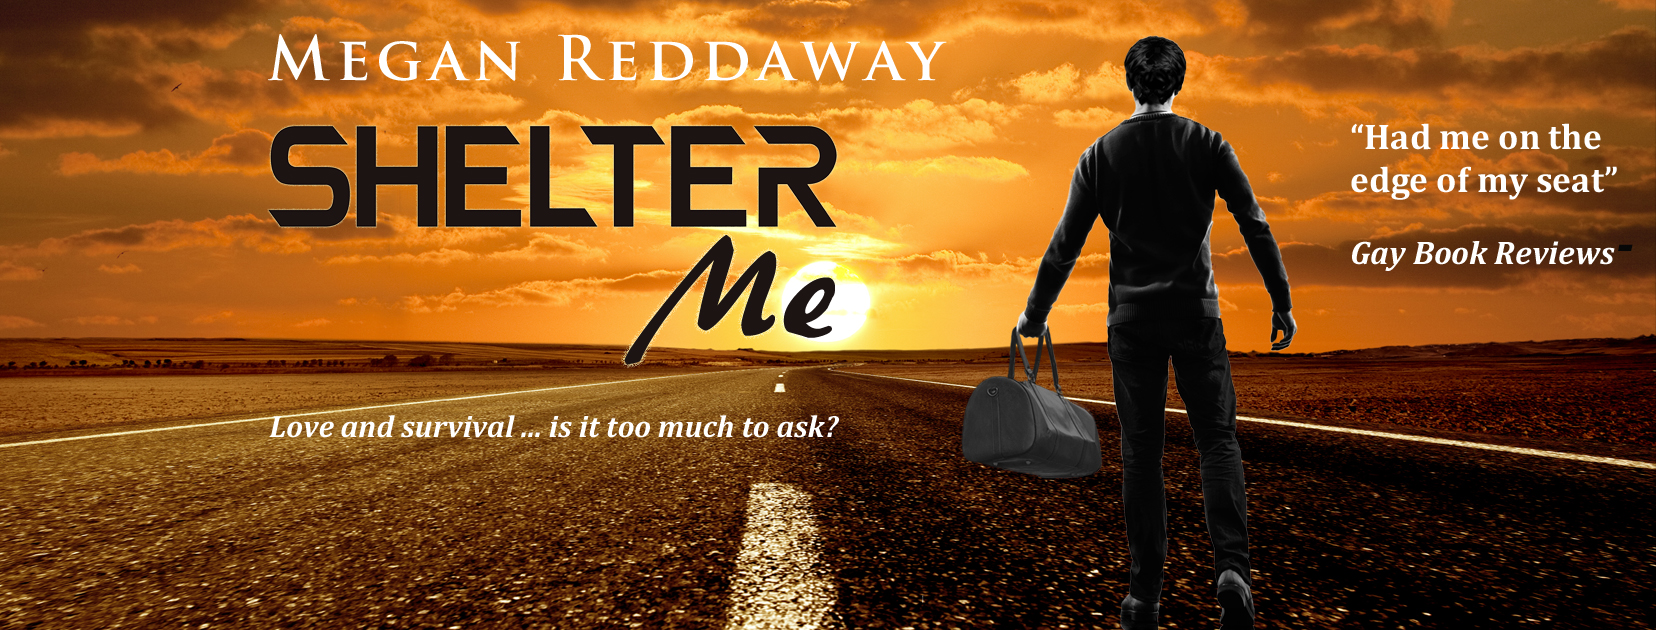 Get Shelter Me by Megan Reddaway on Amazon & Kindle Unlimited